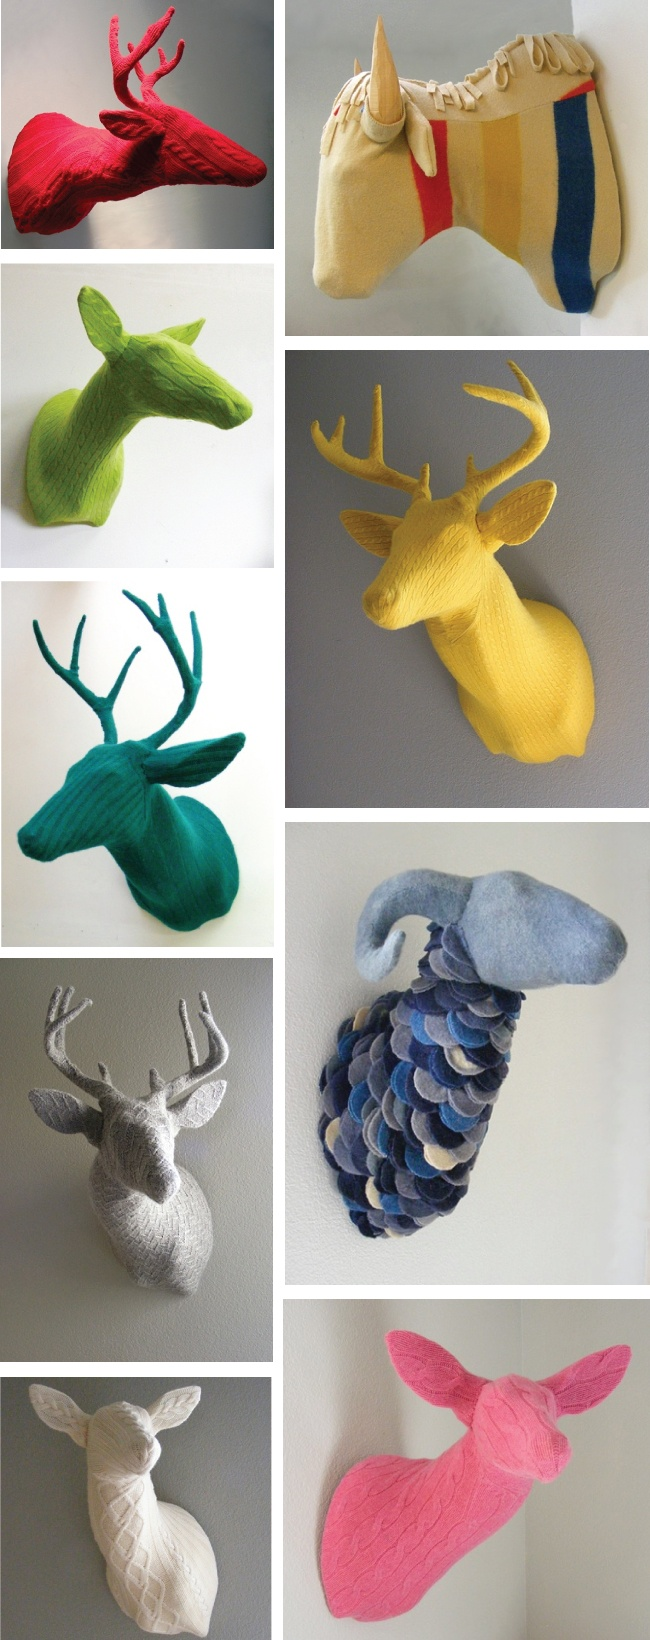 Knit covered deer / bison / whatever heads by Rachel Denny.